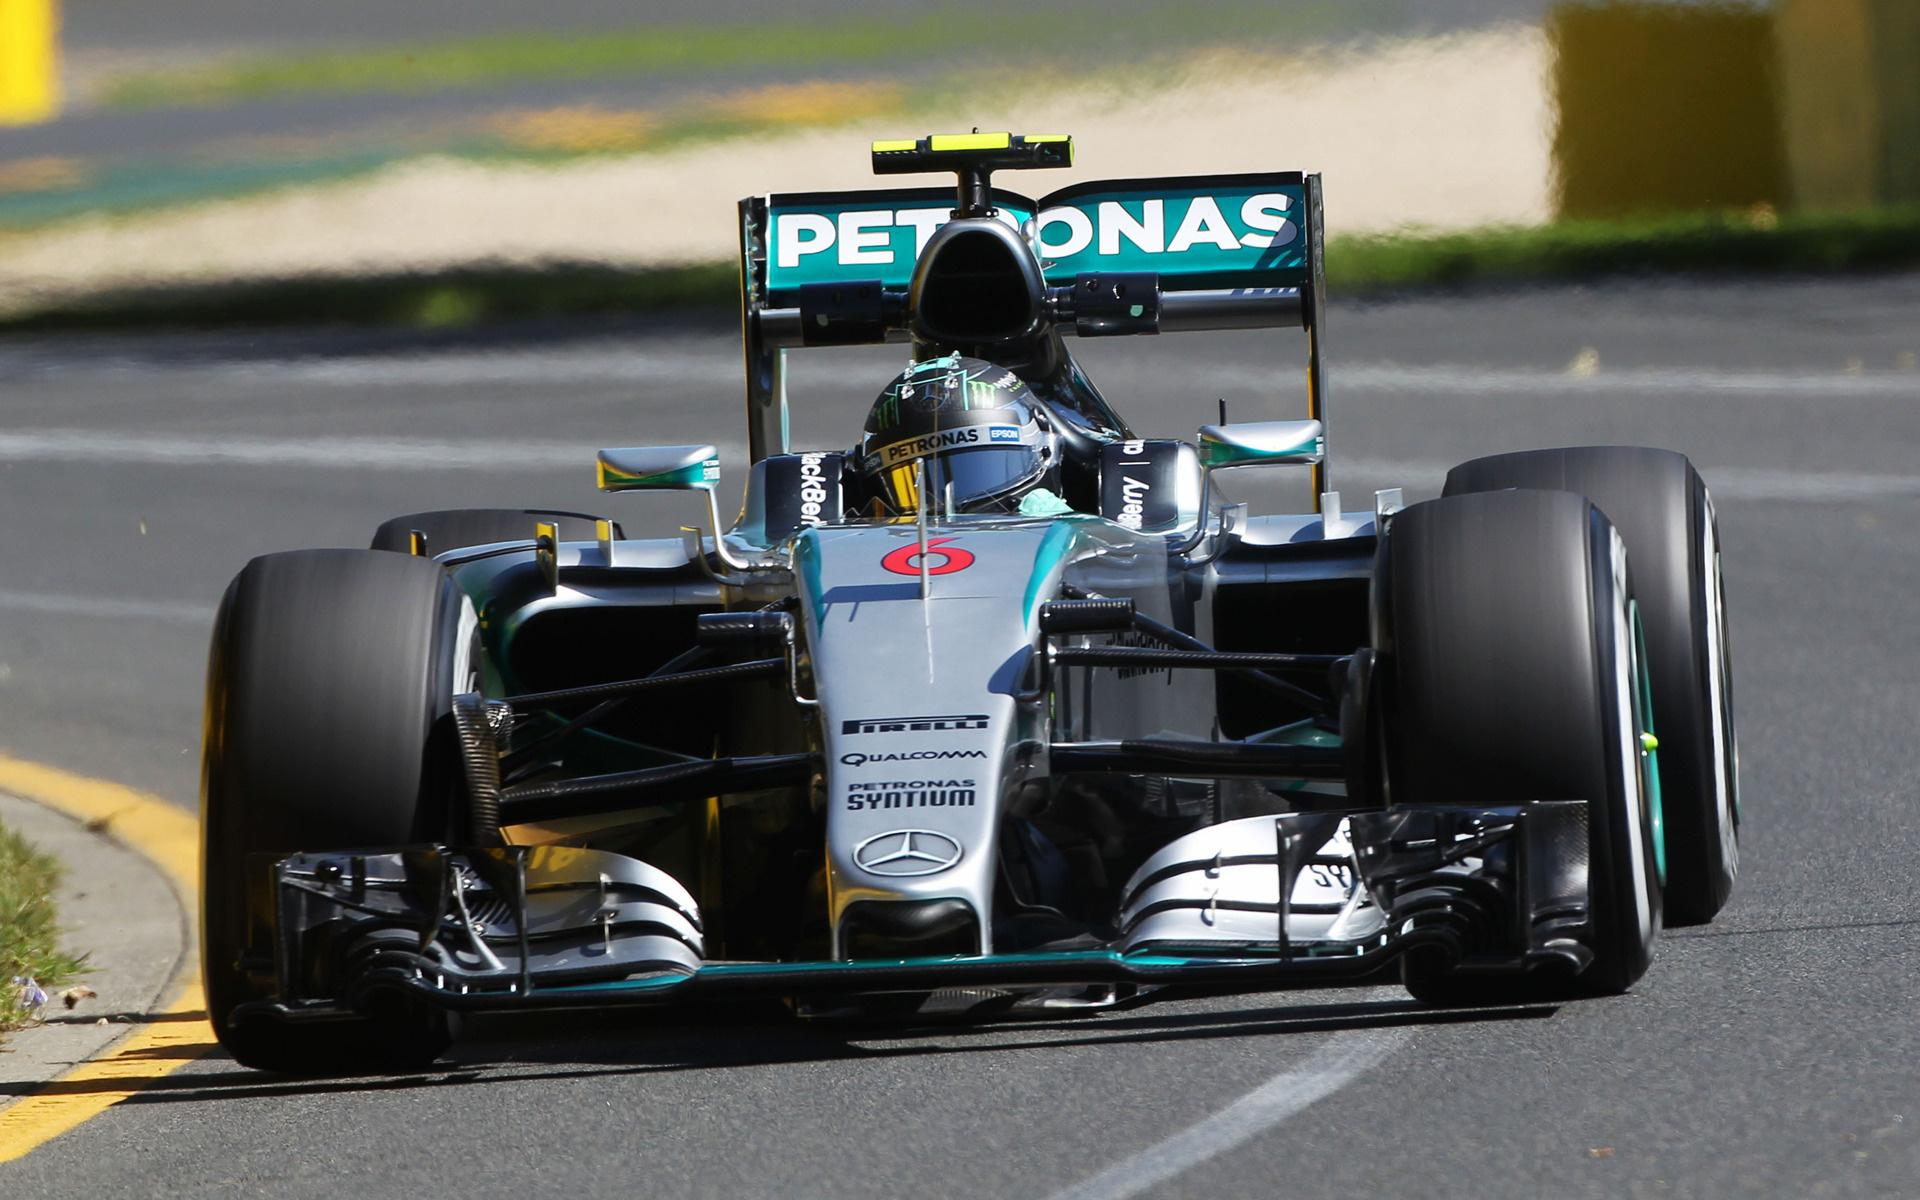 Mercedes-Benz F1 W07 Hybrid specs, lap times, performance data -  FastestLaps.com